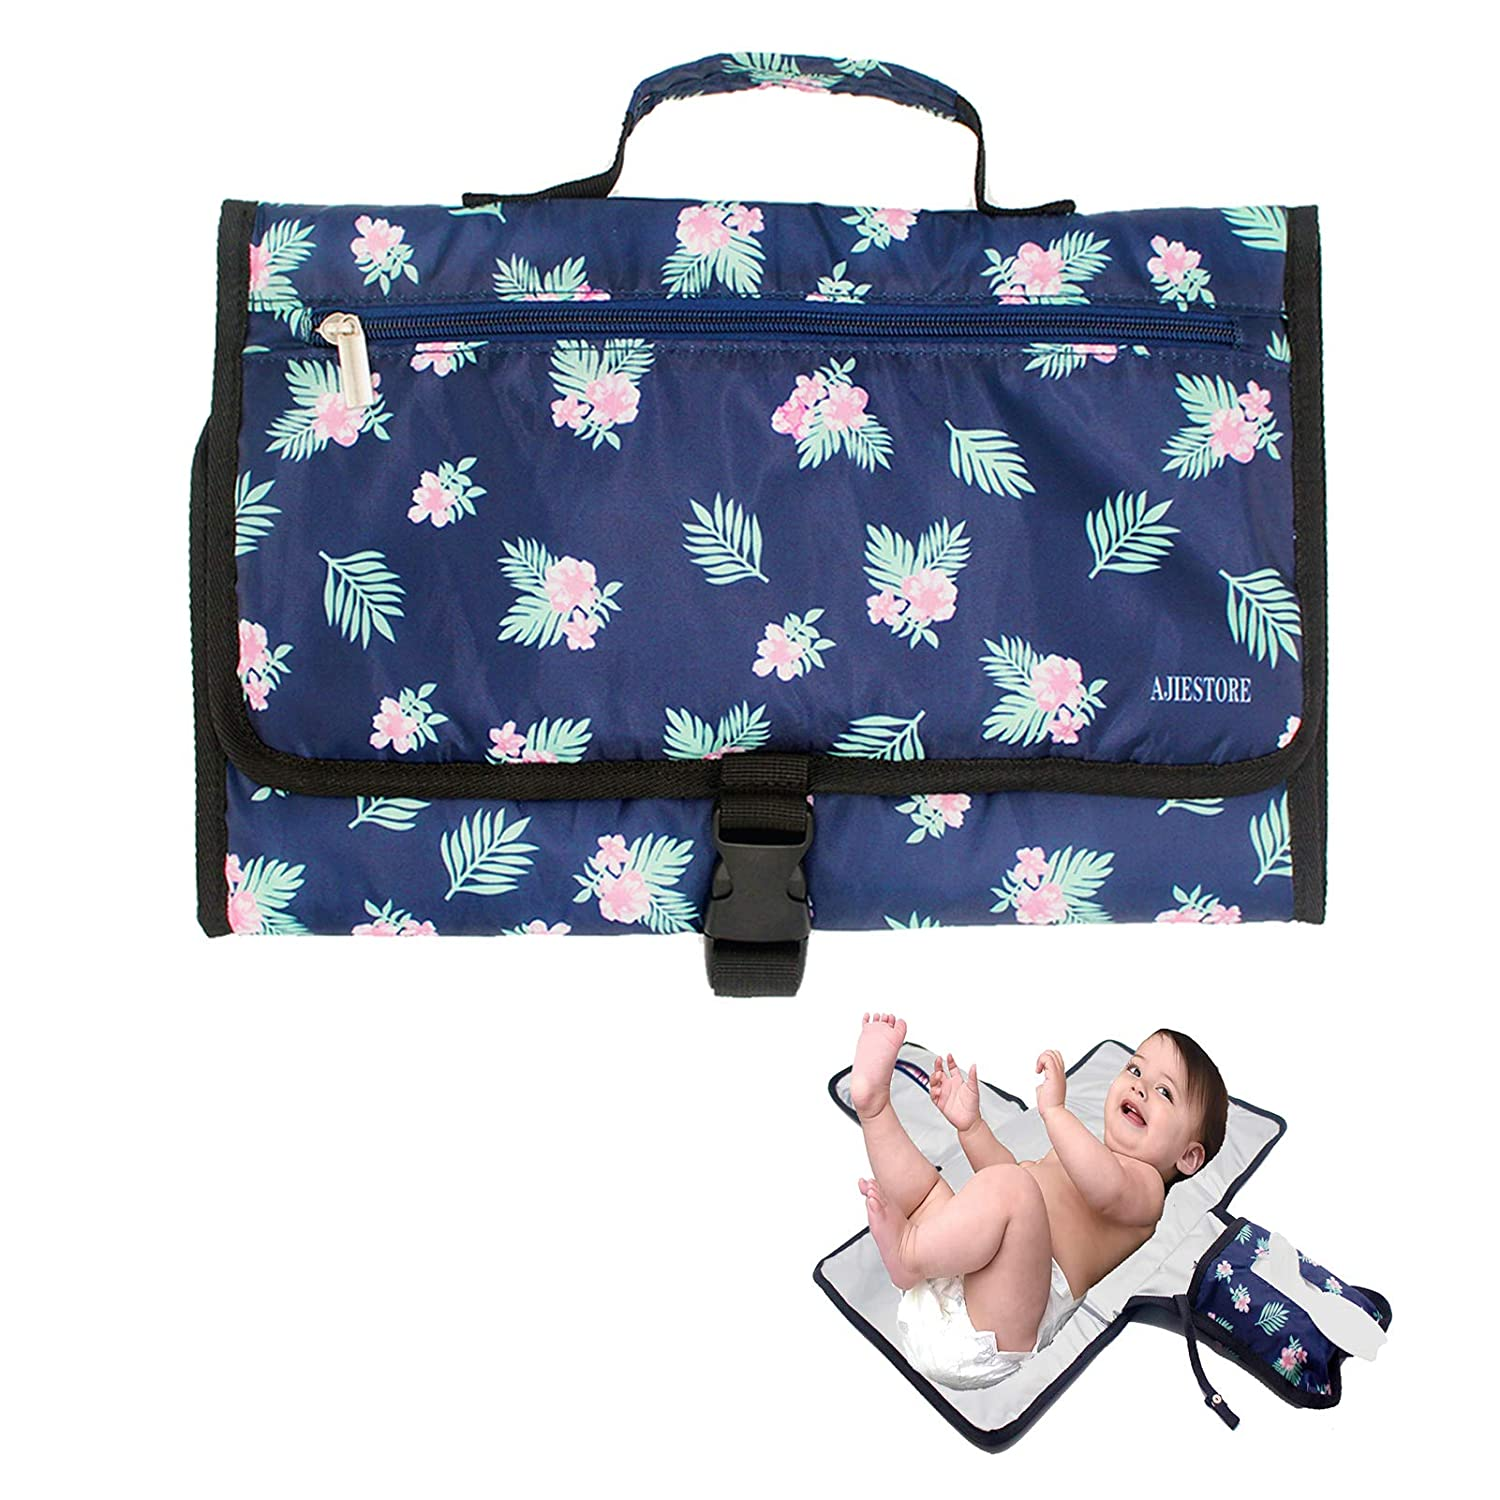 Portable Baby Diaper Changing Pad Waterproof, Portable Changing Pad for Diaper Bag with Pocket | Easy to Clean |Diaper Changing Mat